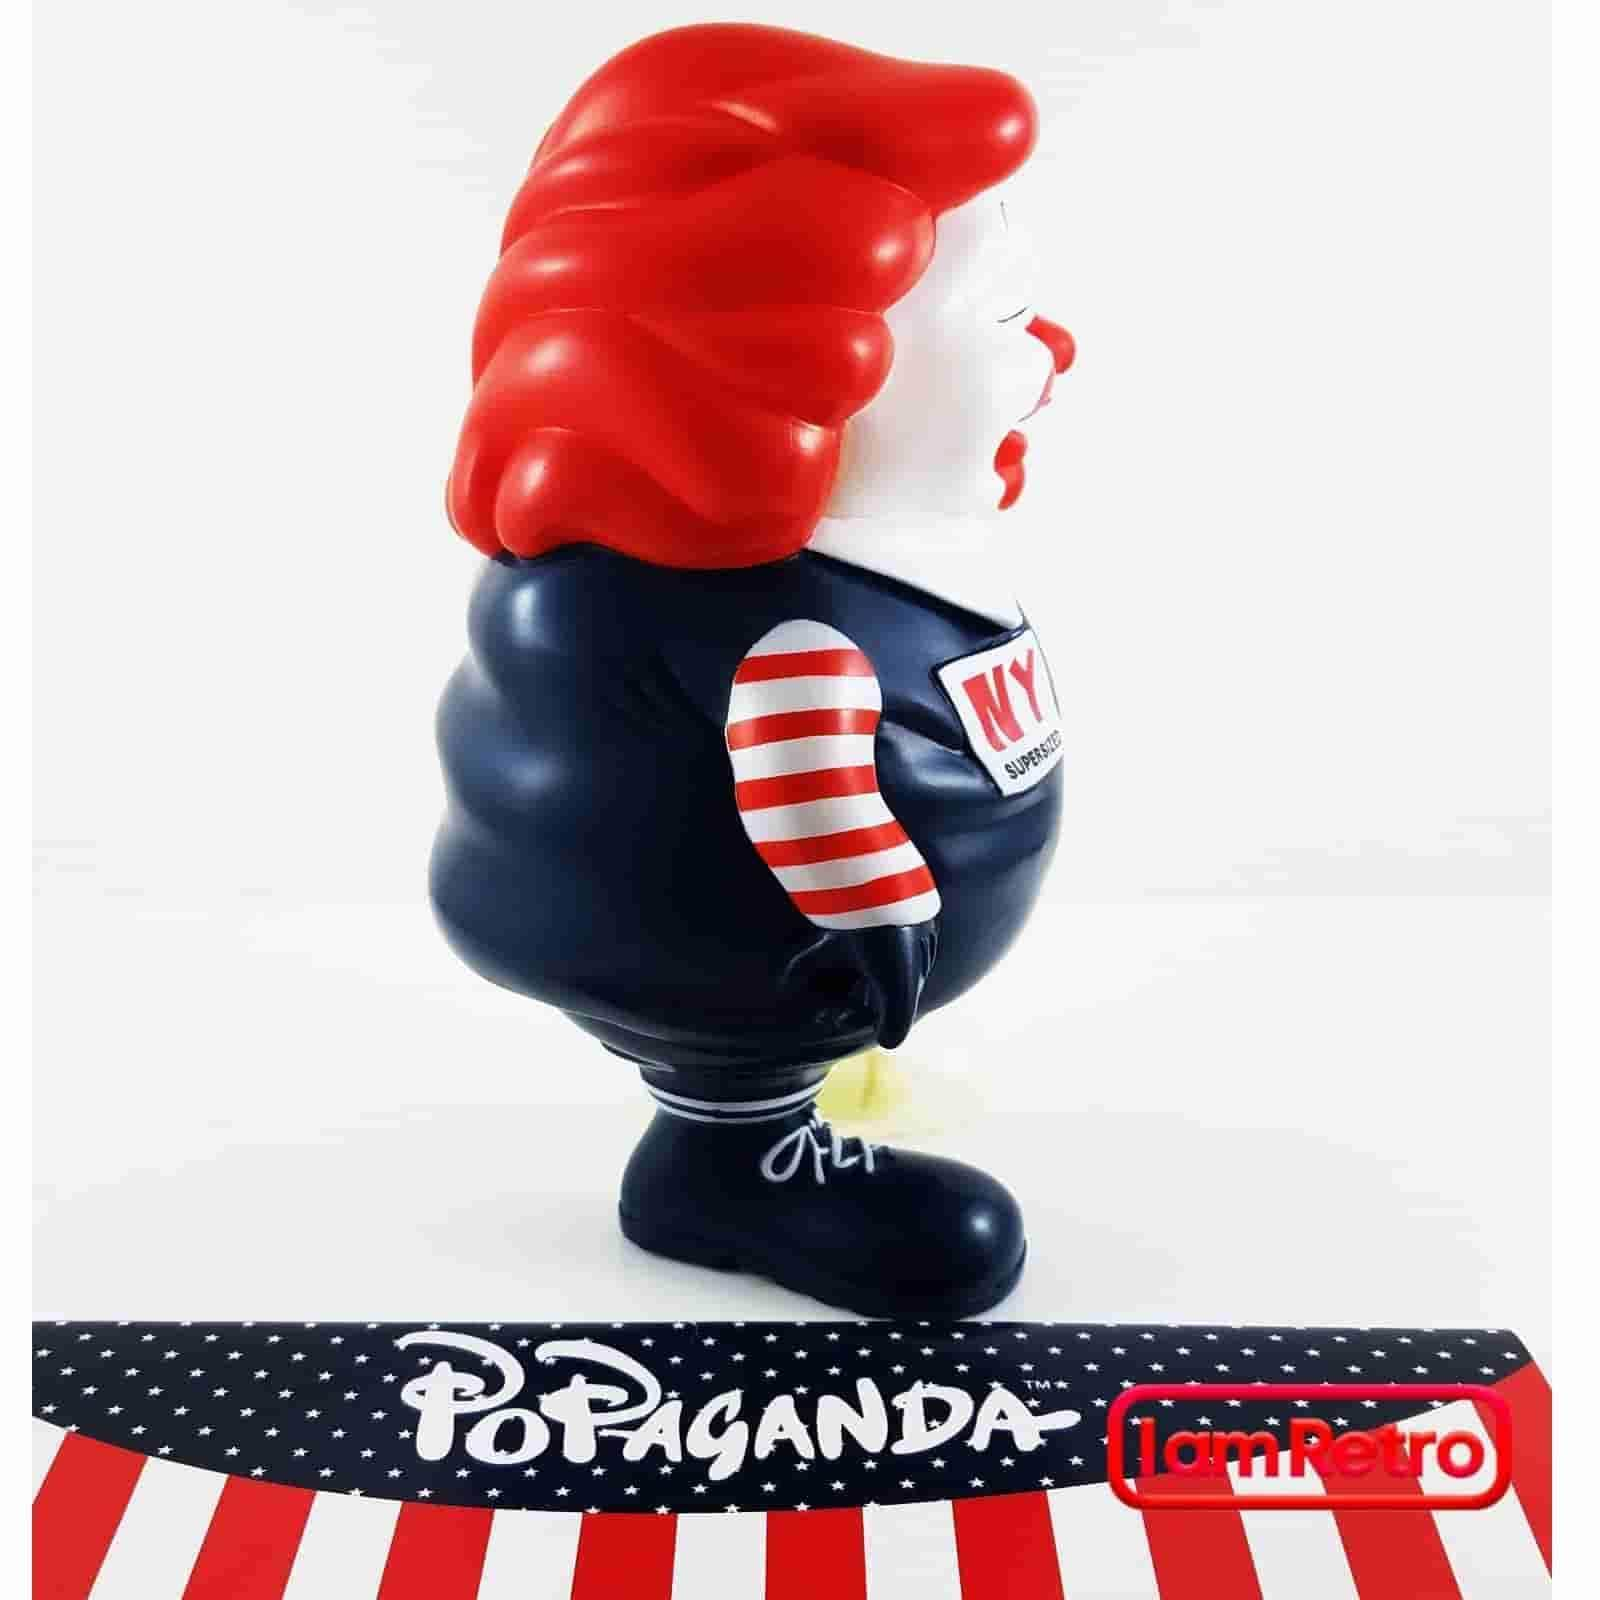 NY Half X-Ray MC SuperSized Secret Base x Toy Tokyo - Ron English - Popaganda